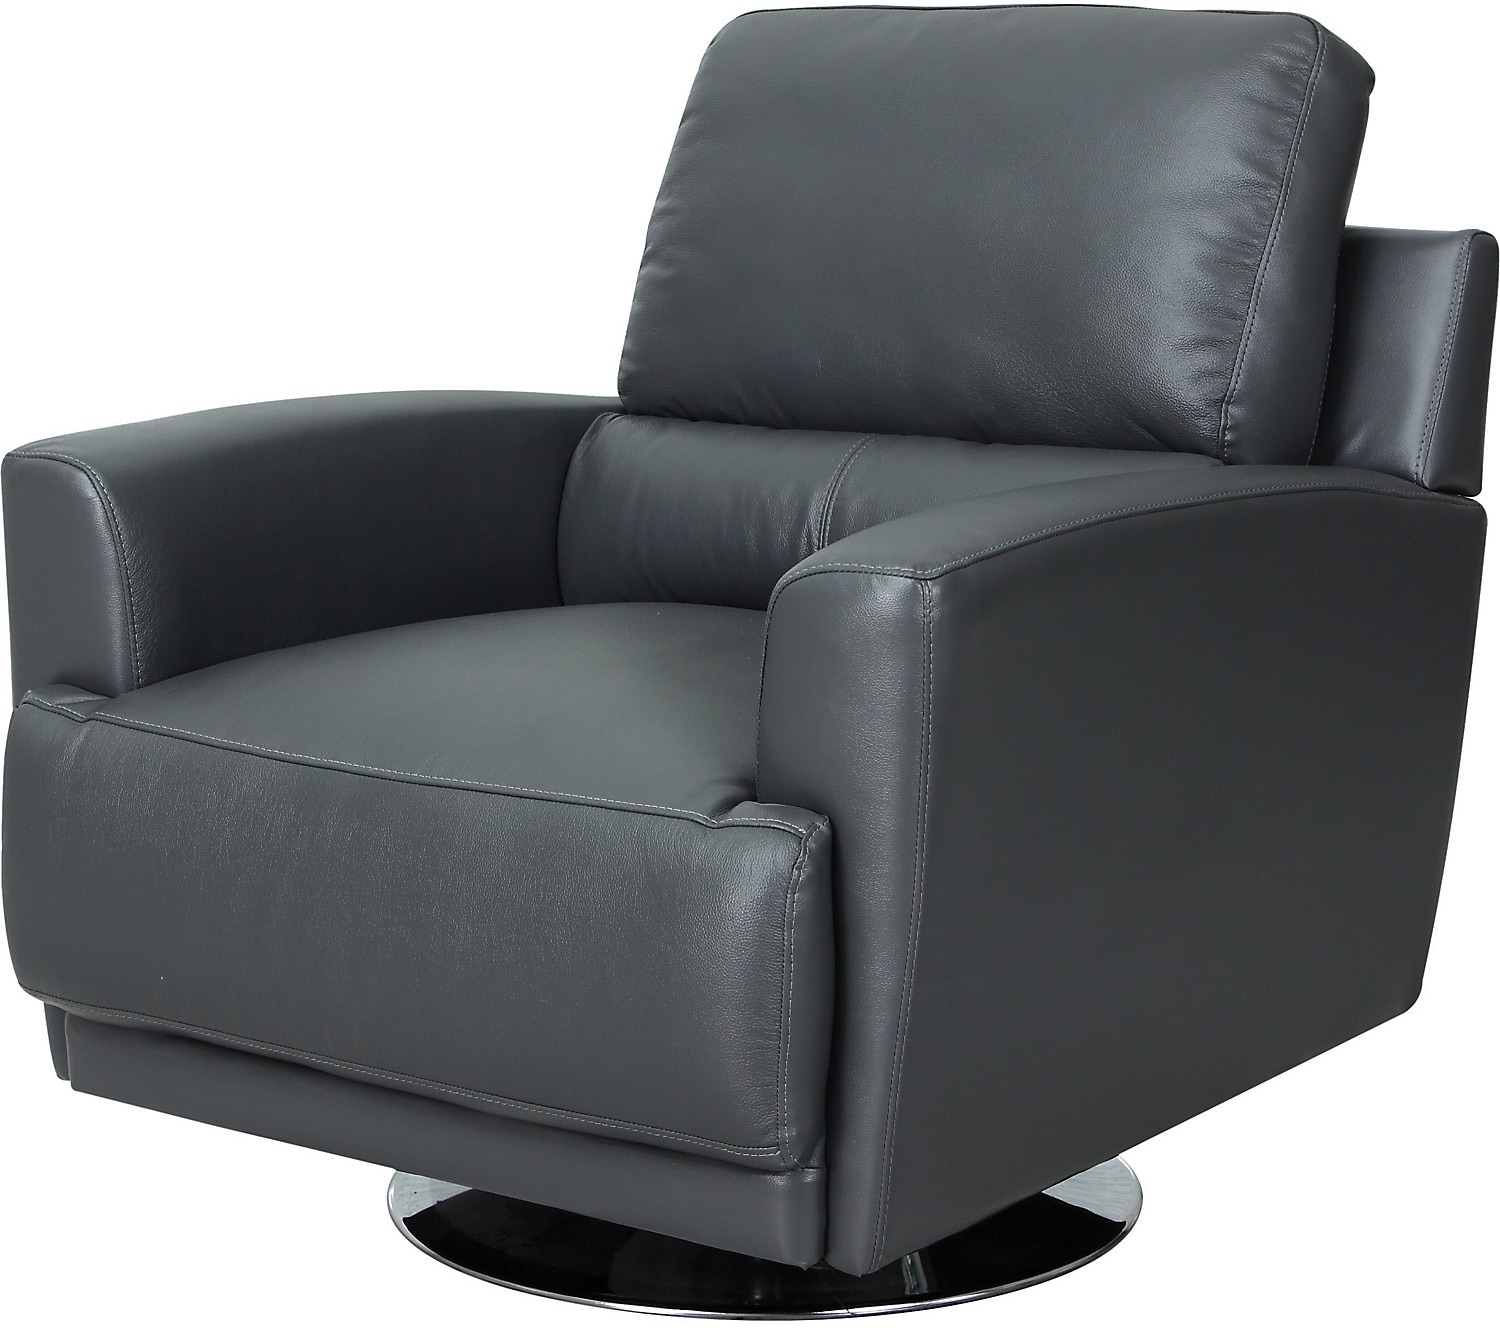 nico genuine leather swivel chair grey united furniture warehouse. Black Bedroom Furniture Sets. Home Design Ideas